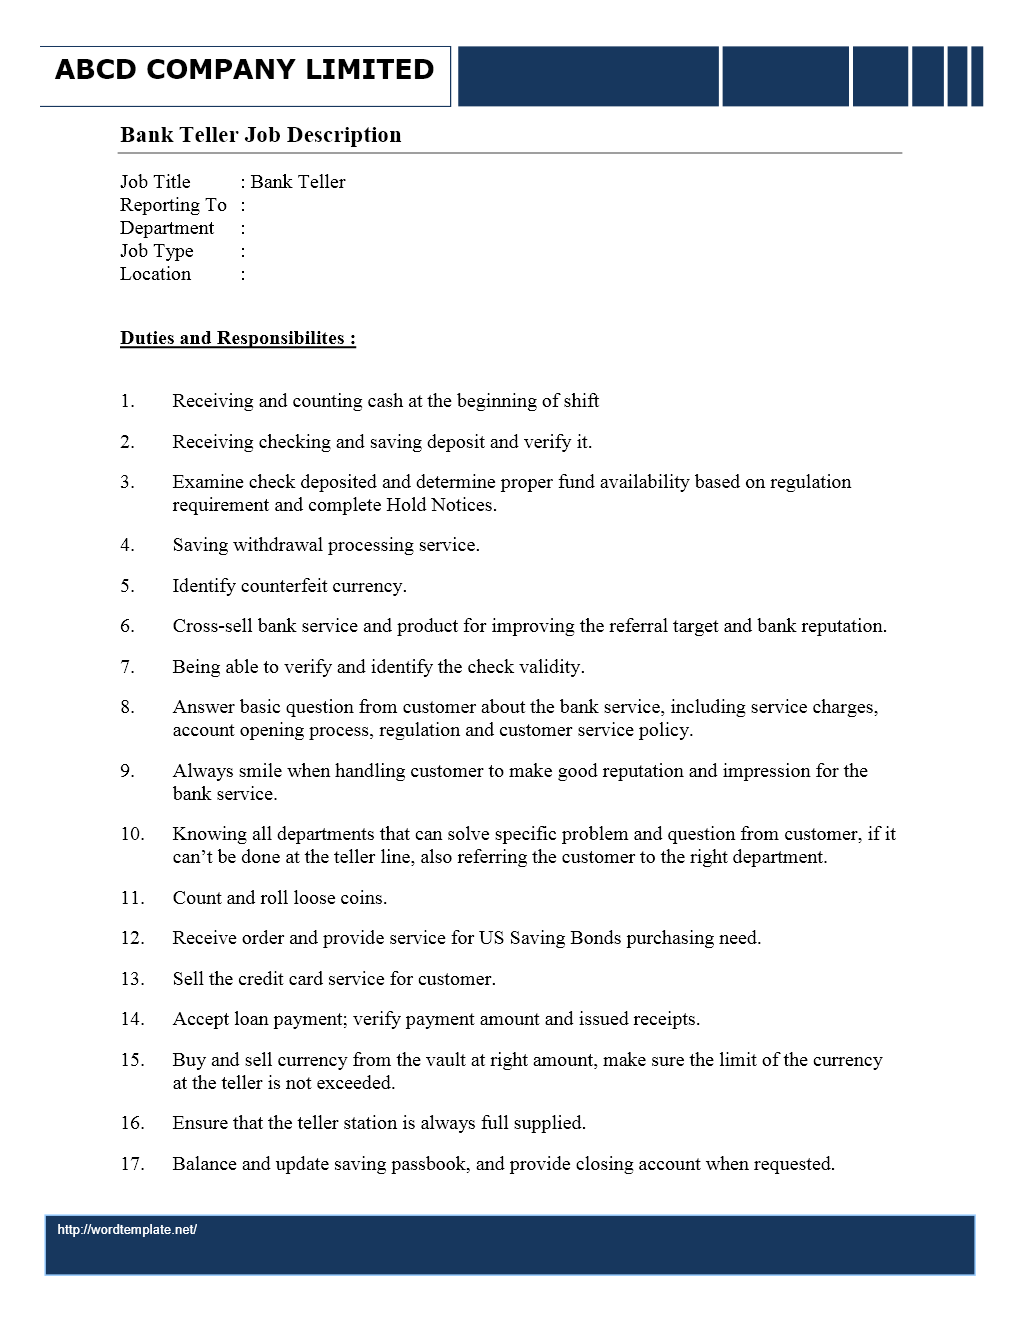 samplebusinessresume com page 21 of 37 business resume bank teller job description resume sample